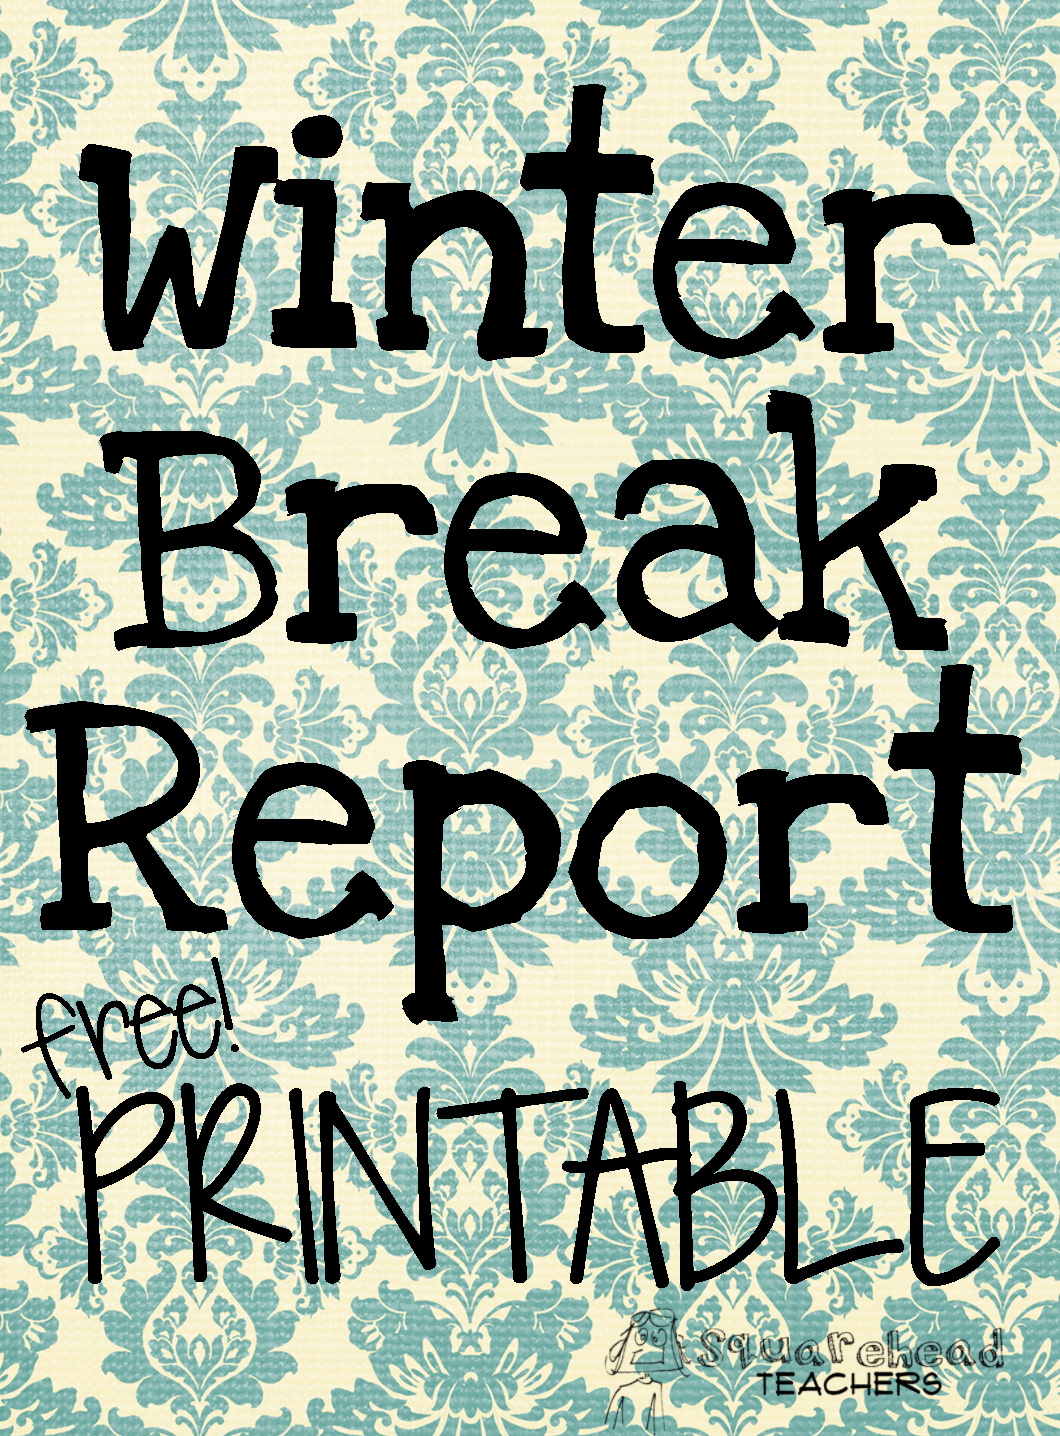 essay about my winter break Essay on winter vacation for grade 2 feel the student of class 2 that they can write an essay about winter for my vacation experience watch this essay.